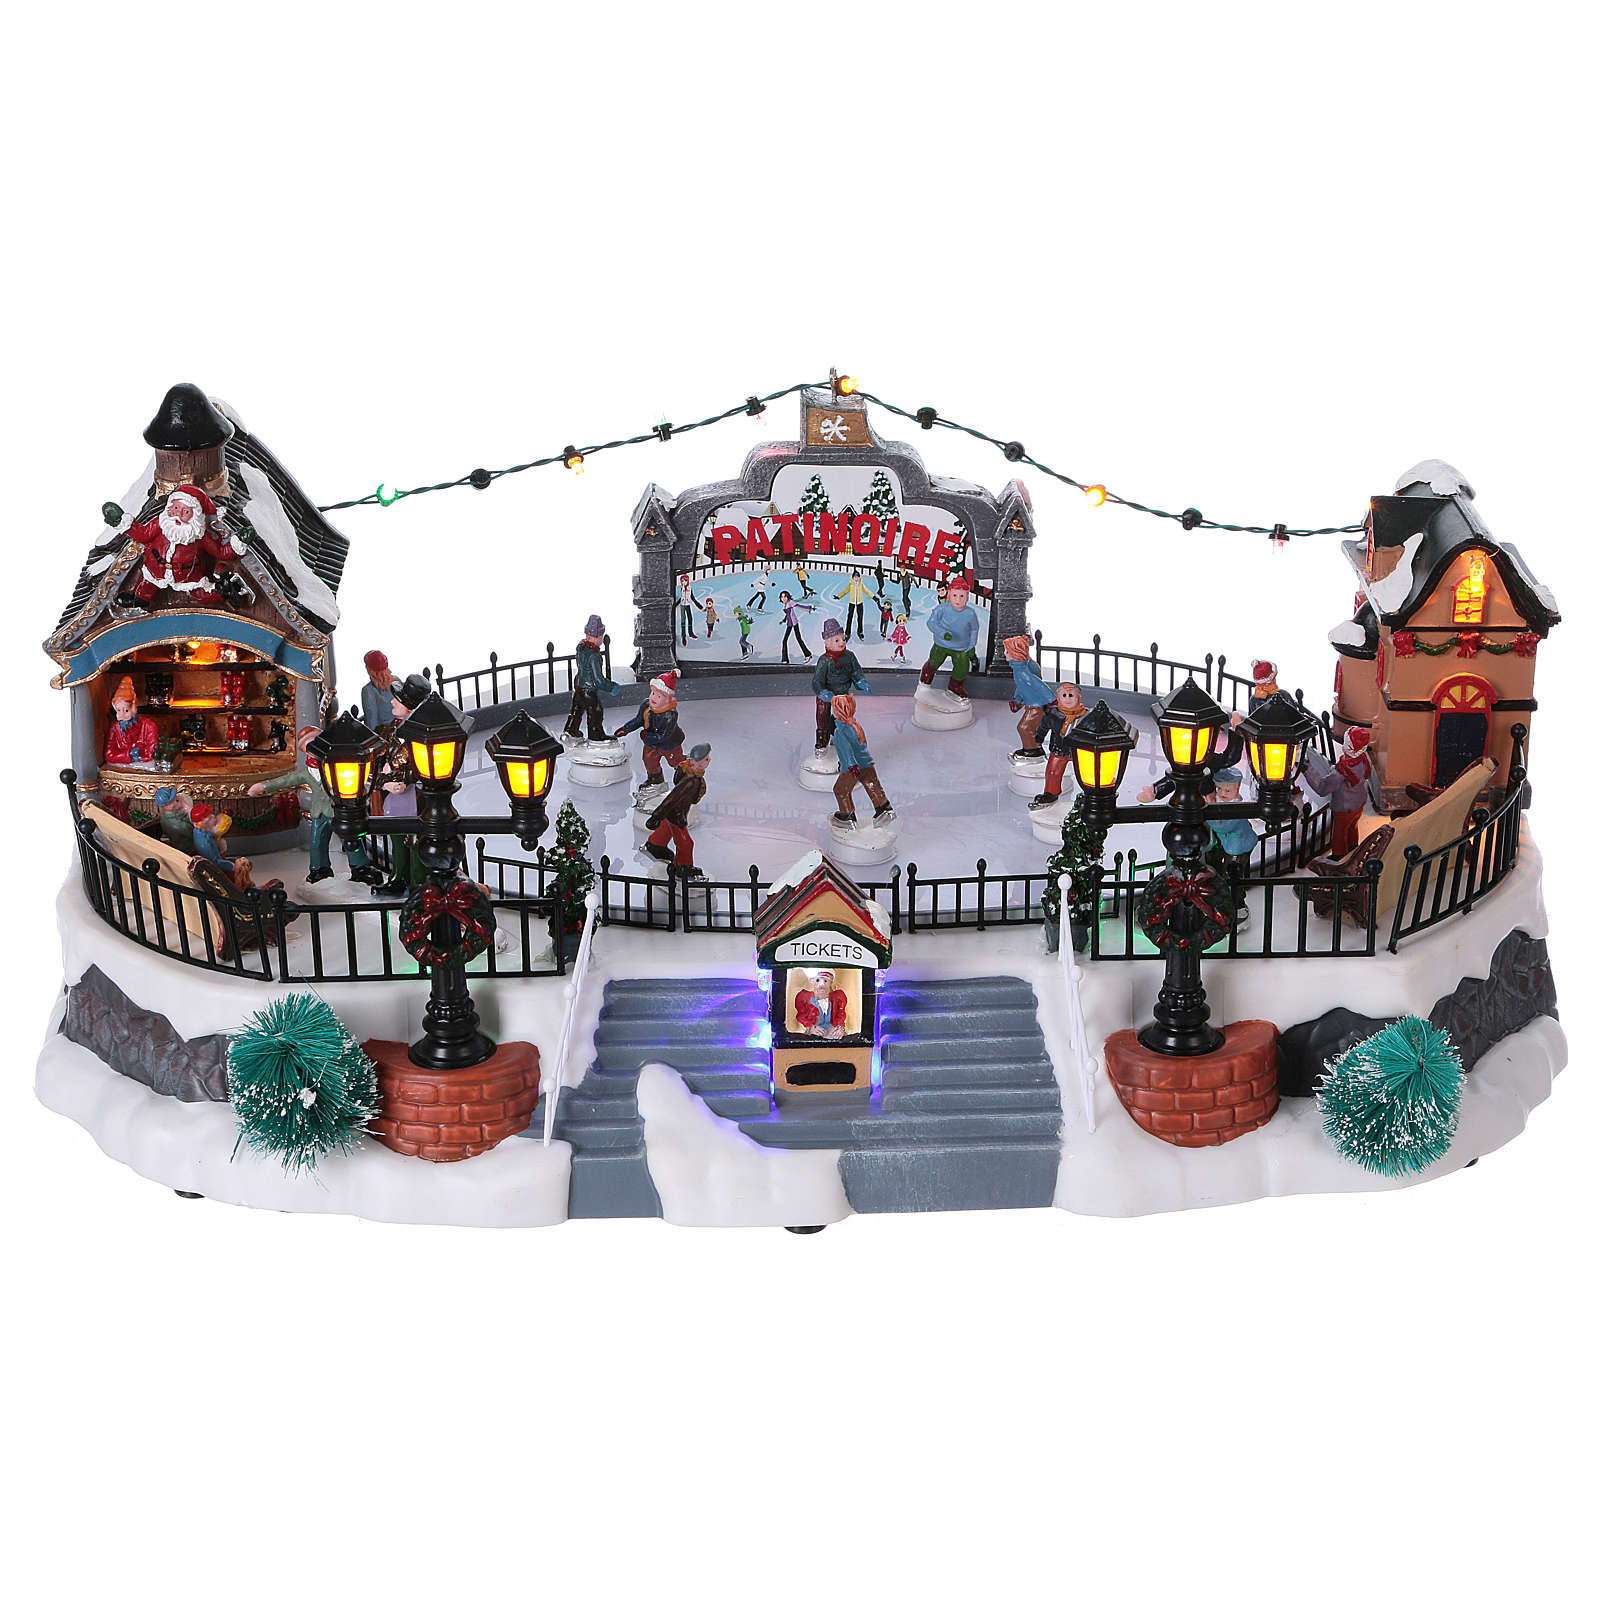 Skating Rink Christmas Scene 20x40x25 cm with Moving Skaters and Santa Clause Power Operated 3